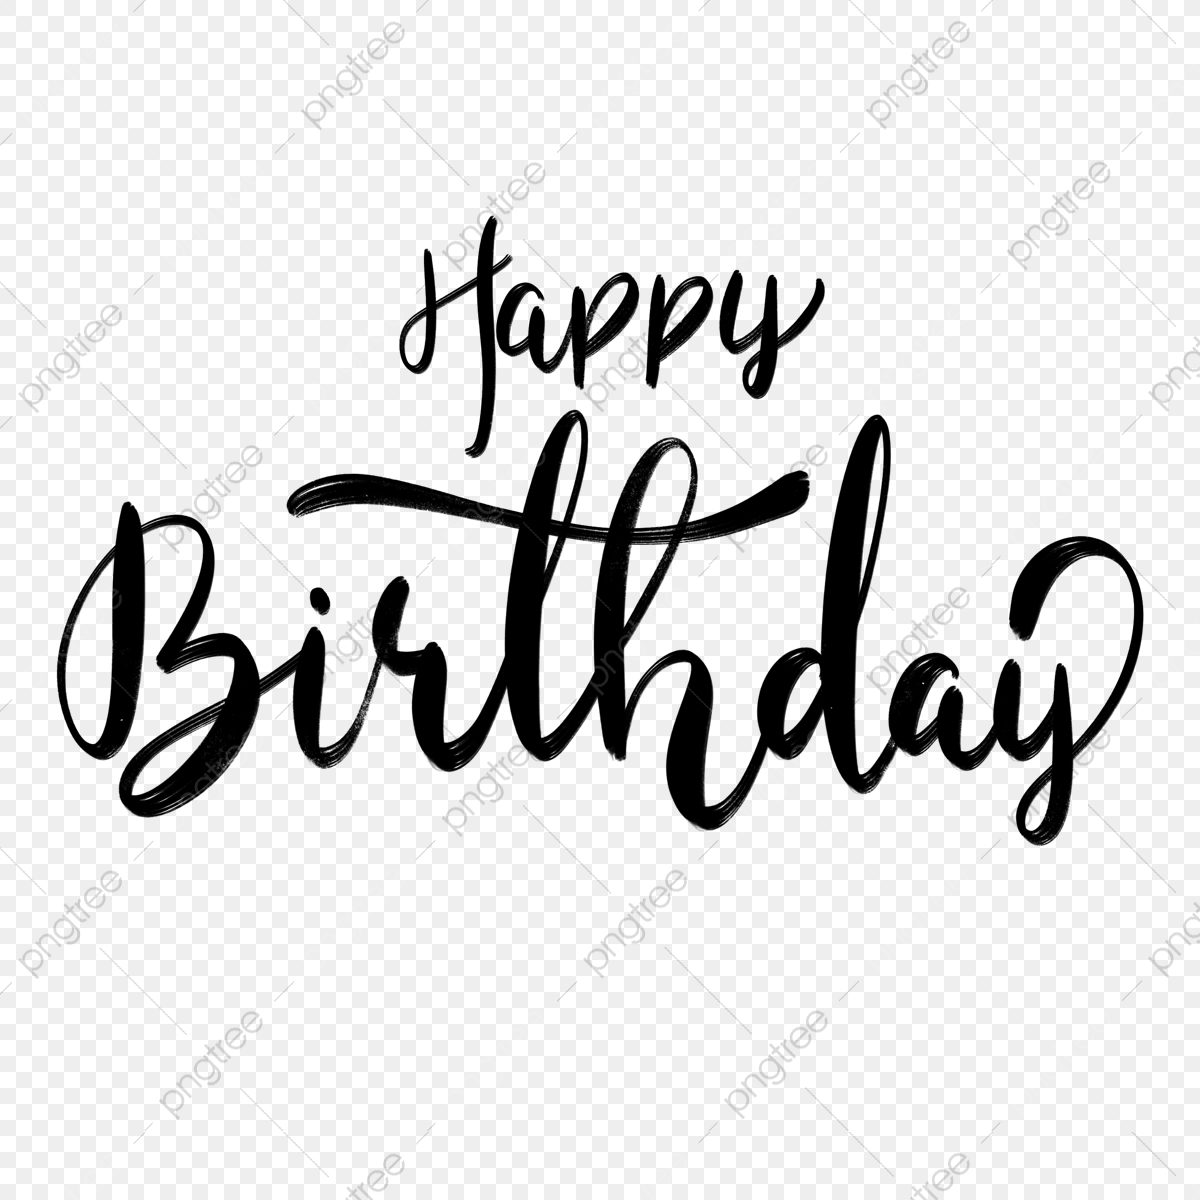 Birthday Font Png Images Vector And Psd Files Free Download On Pngtree